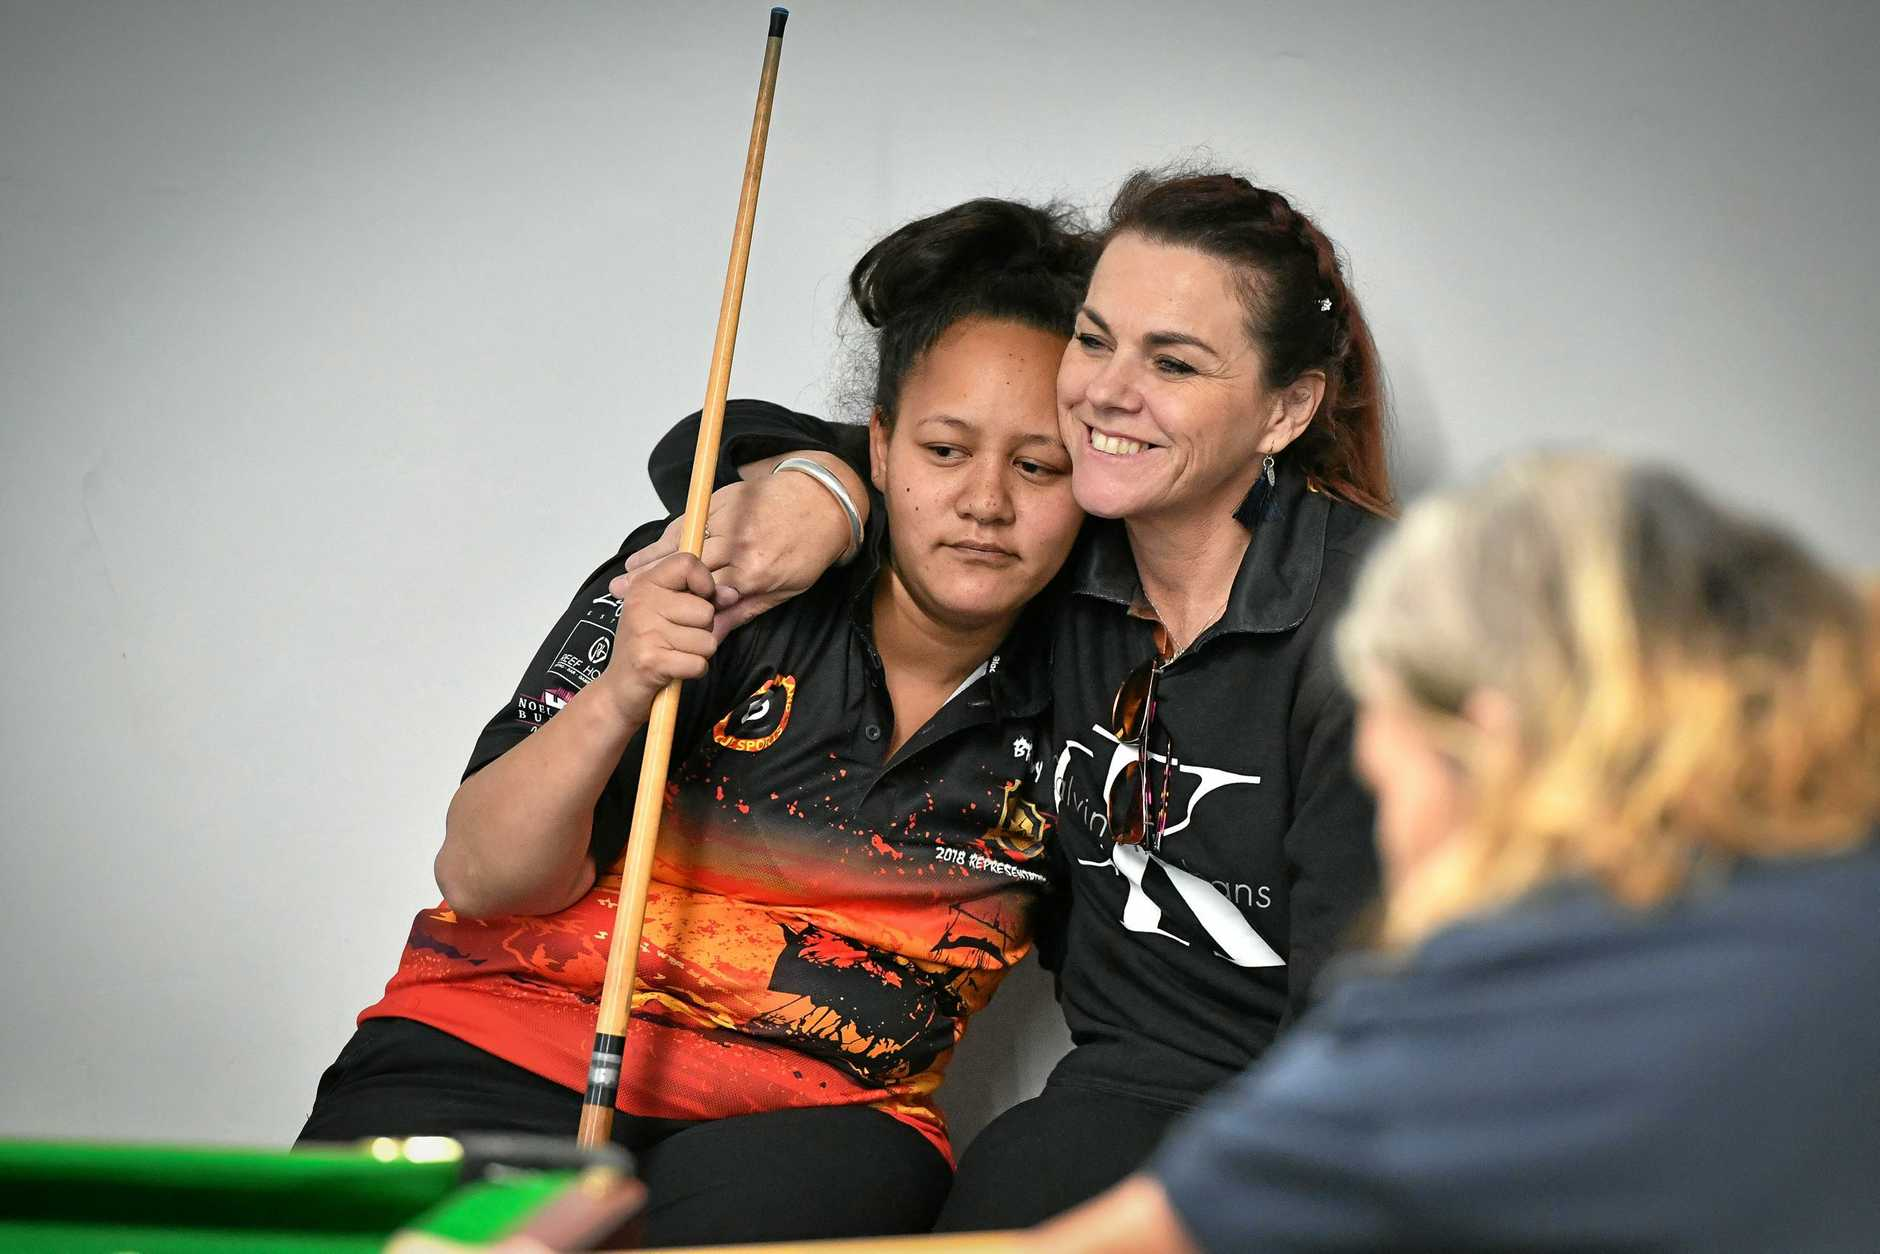 Brandy Wineti and Tina Gallagher at the 2018 Port City Cue Sports Women's Championship.